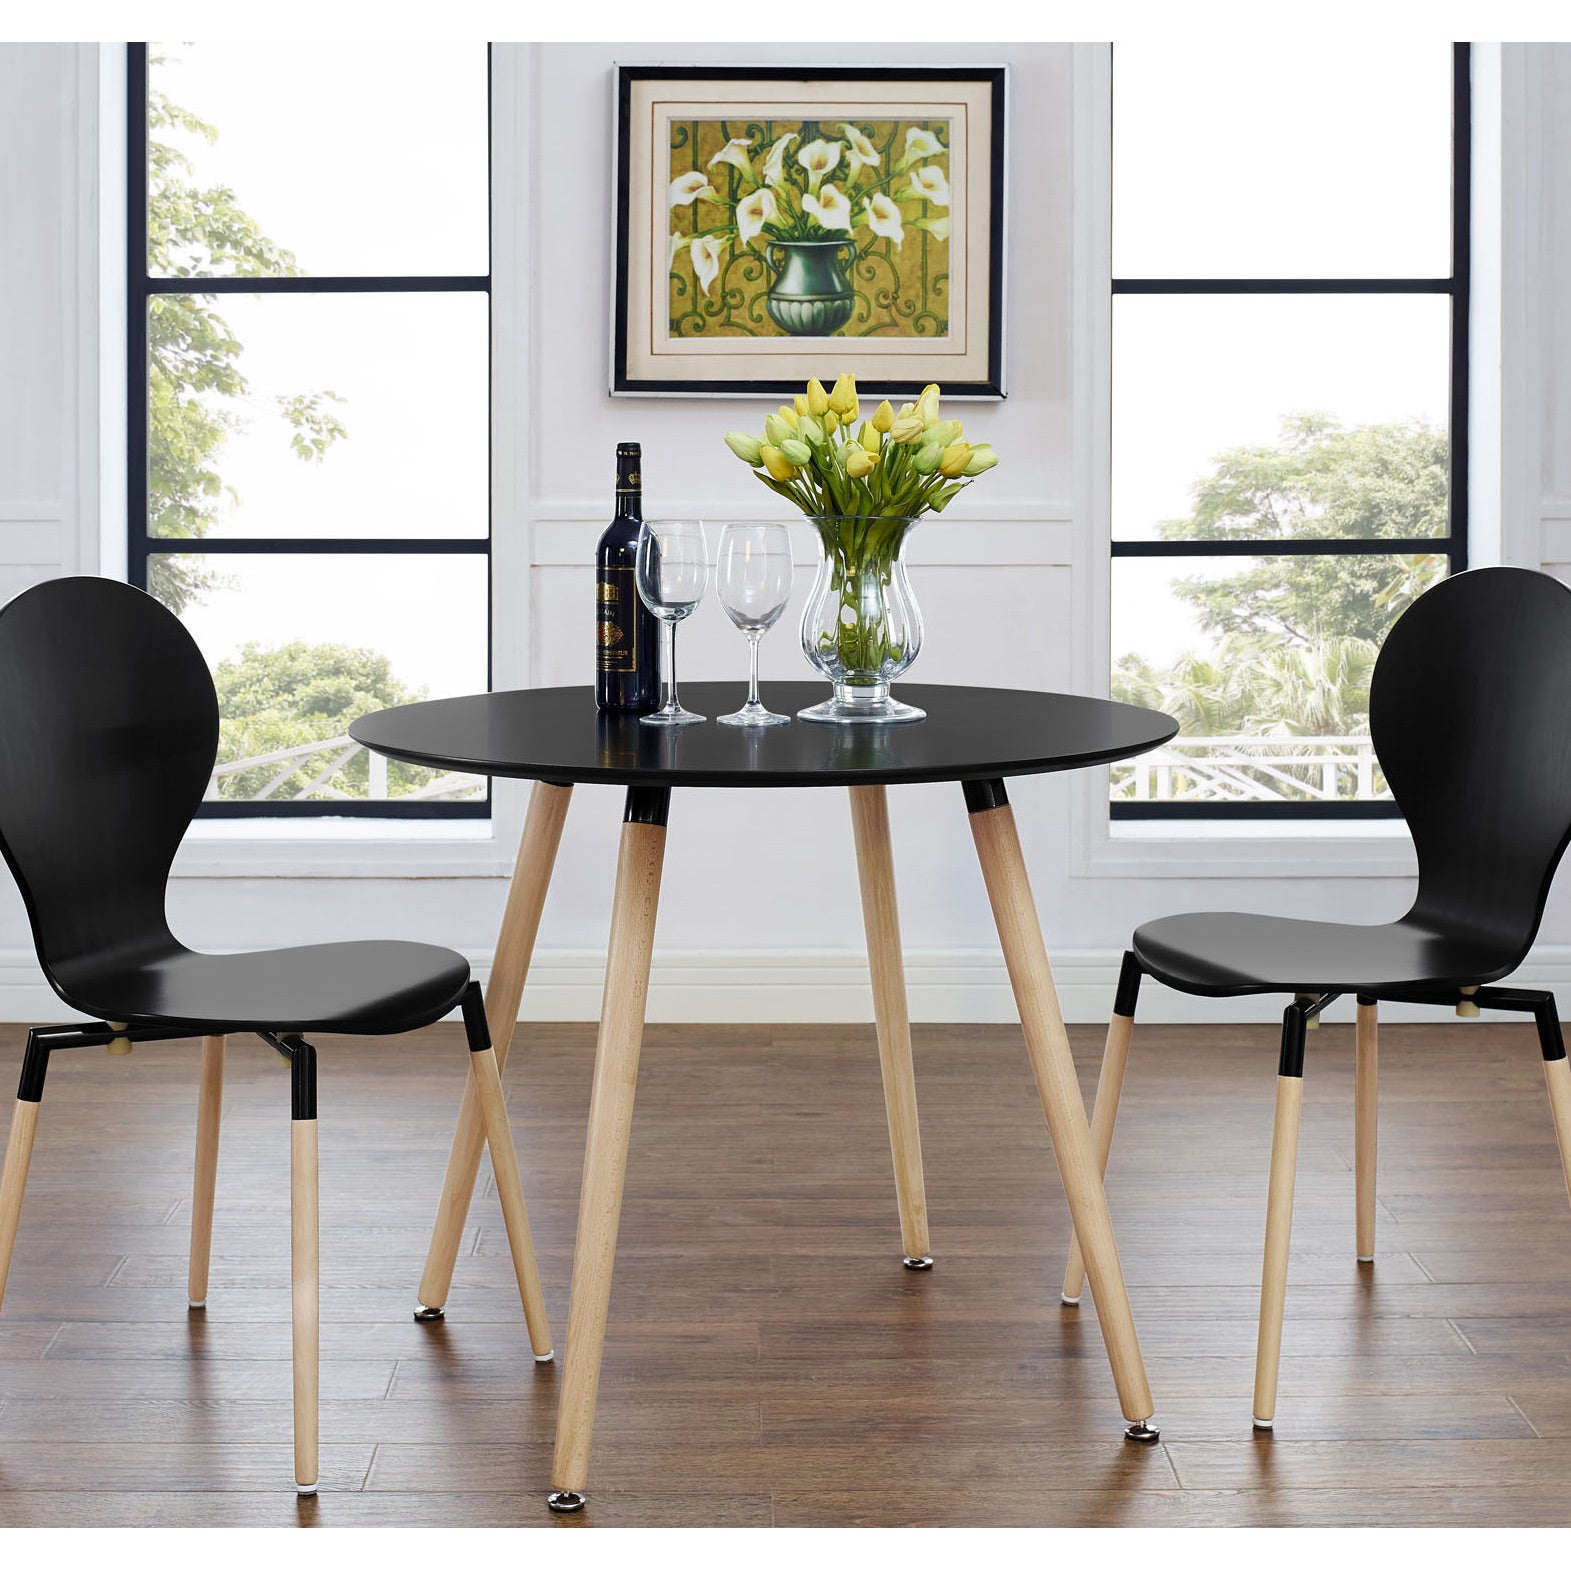 Pin By Marianna Italiana On Apartment Life In 2021 Circular Dining Table Dining Table Black Round Dining Table